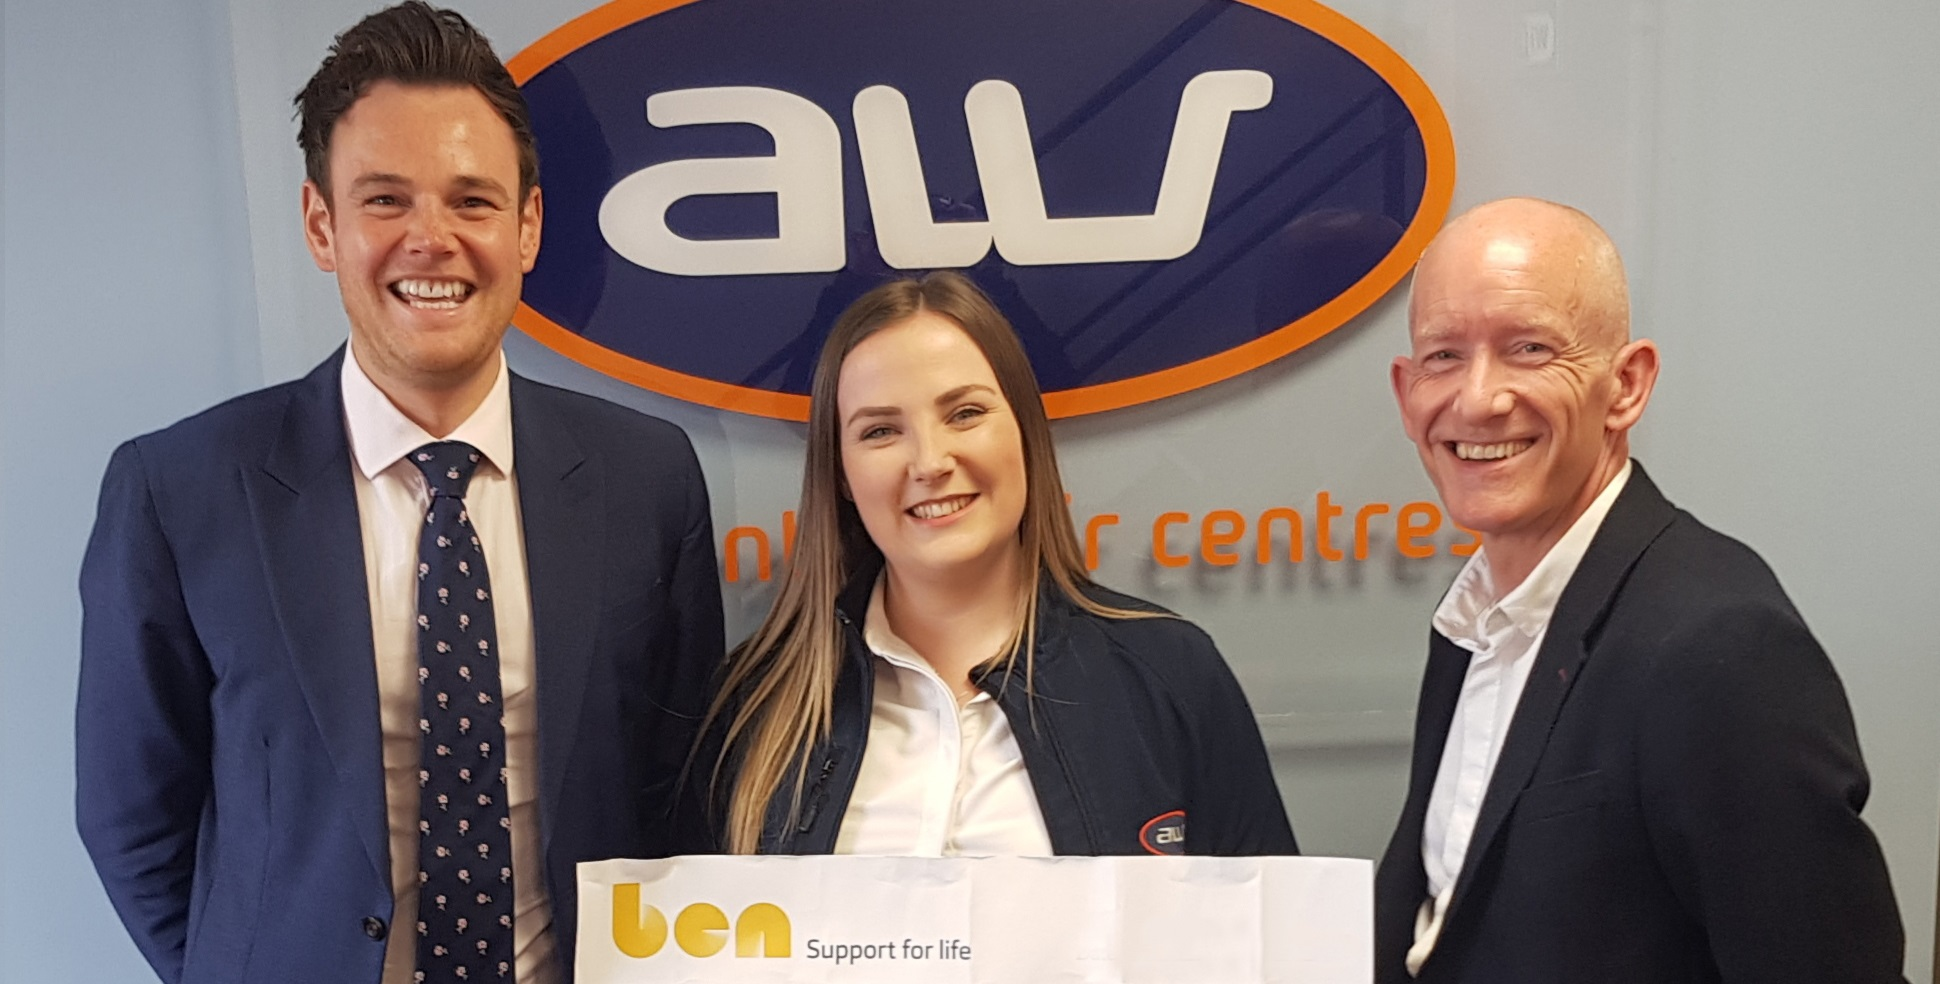 £1,000 donation to industry charity, Ben